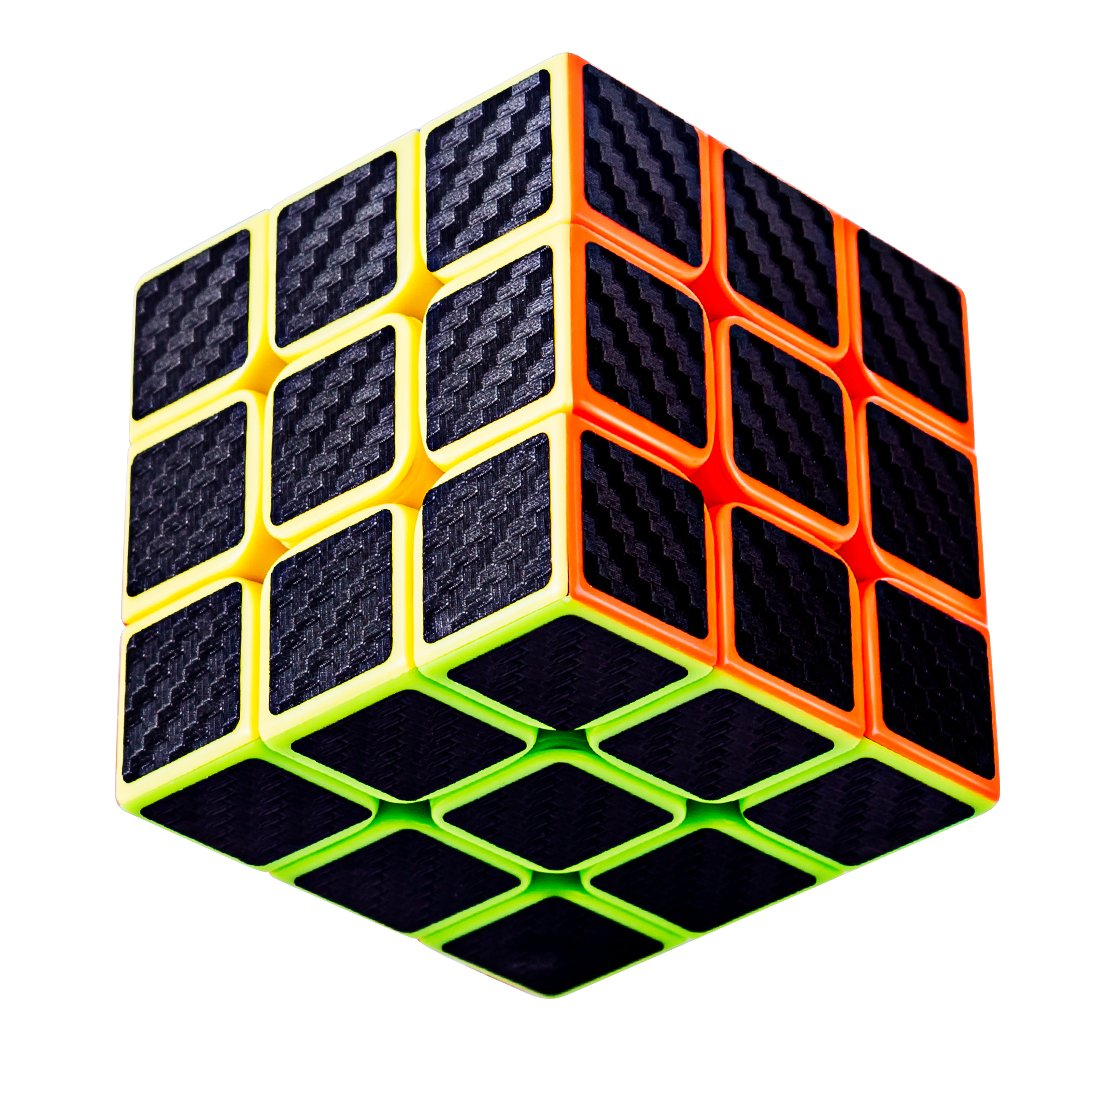 TaoLeLe Magic Cube, 3x3 Carbon Fiber Sticker Smooth Speed Cube Puzzle Toy Upgraded Version